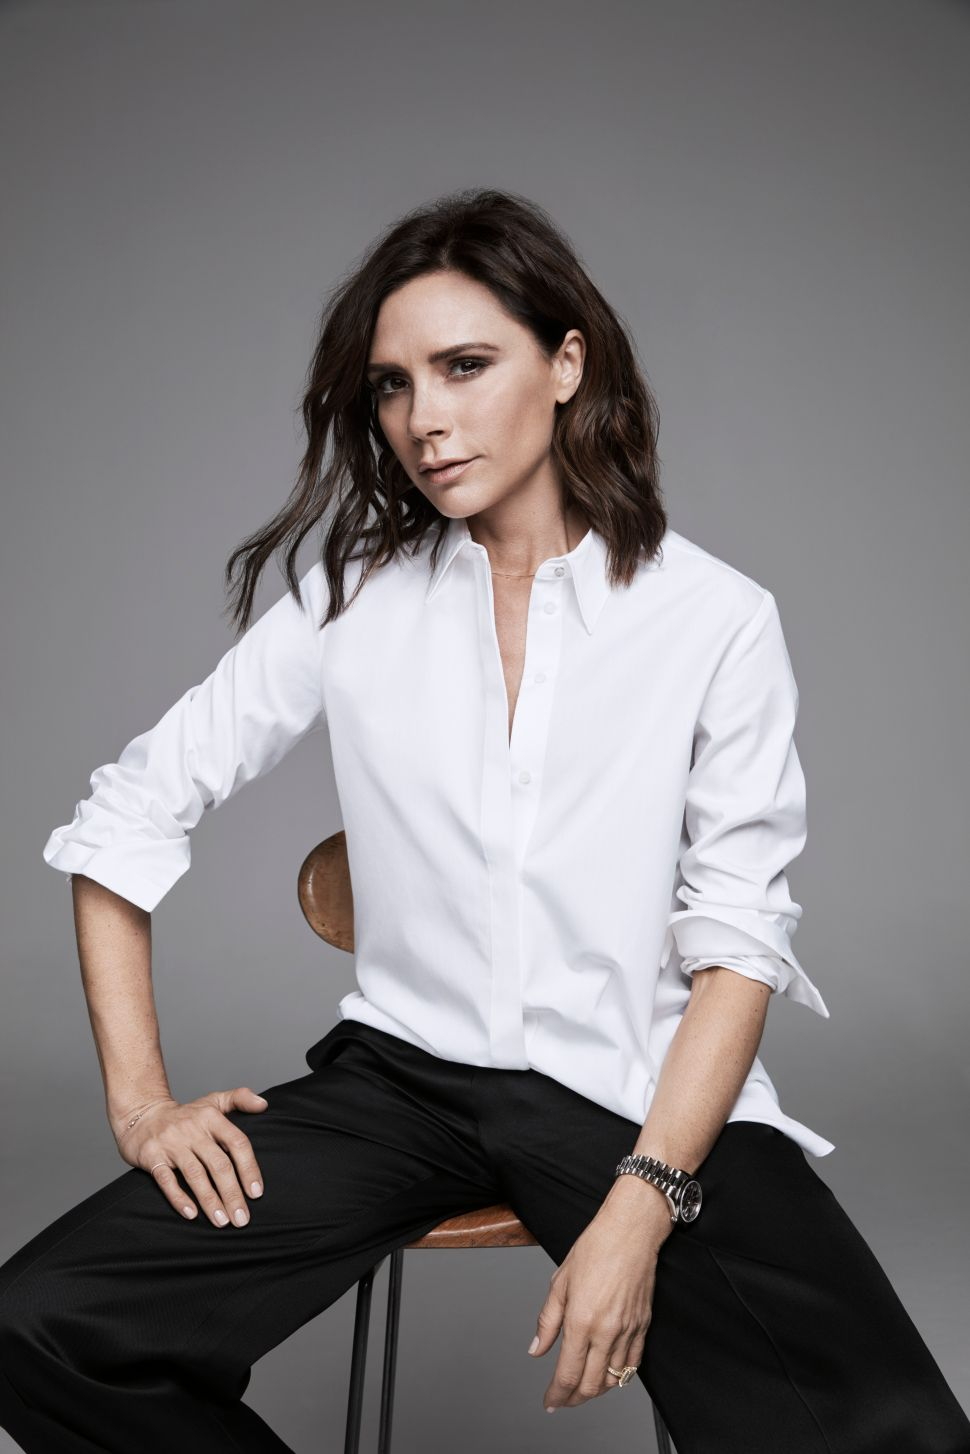 Victoria Beckham, Vera Wang and Swarovski: Three New Collabs to Know